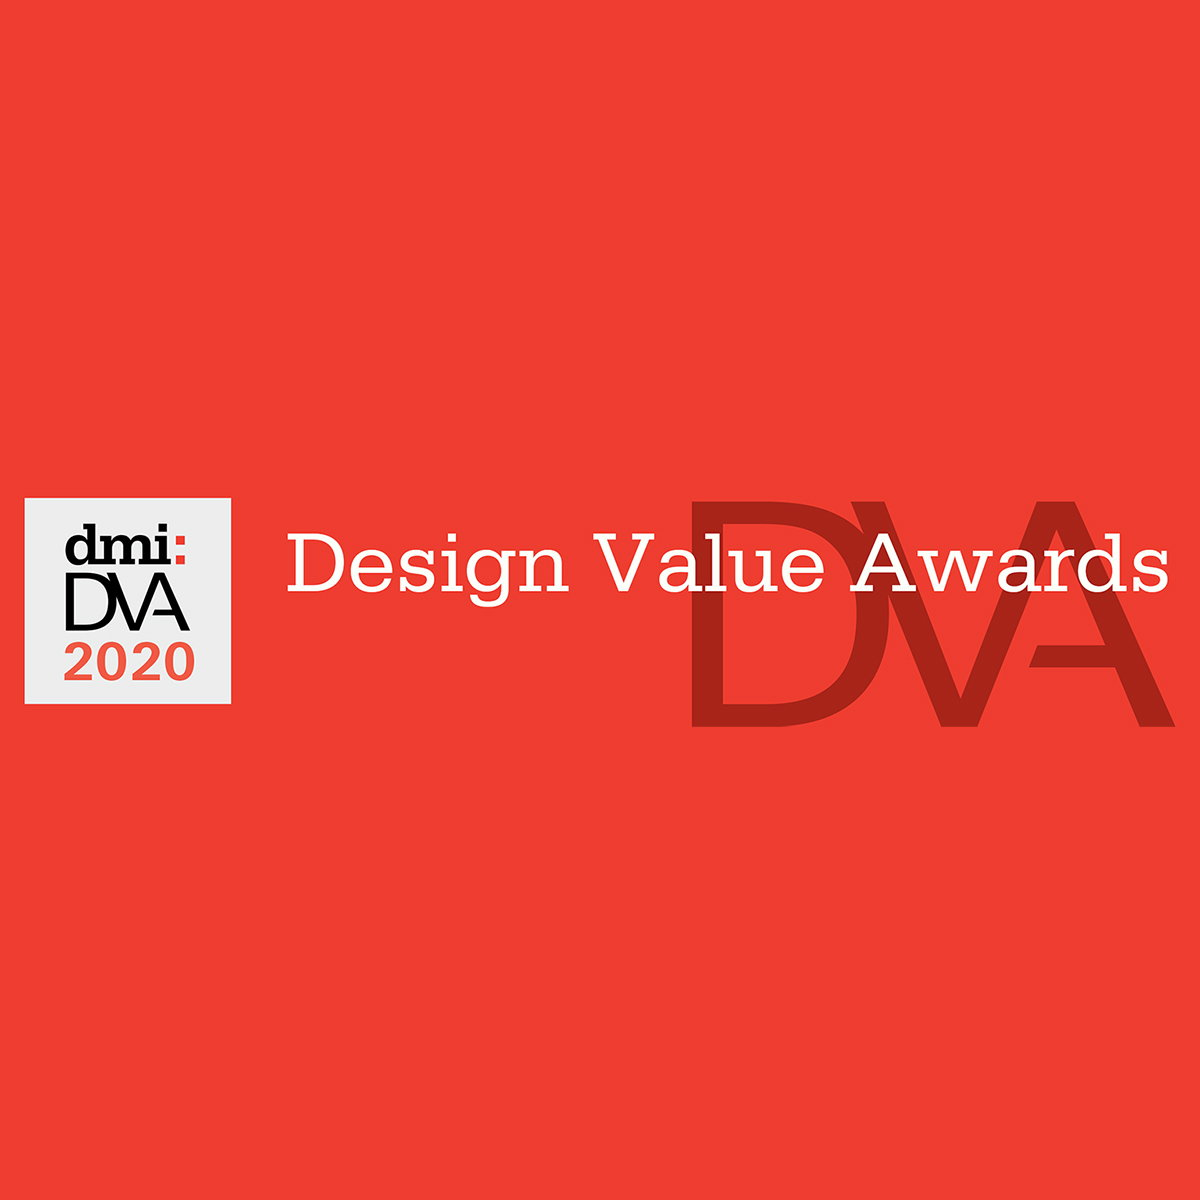 dmi - 2020 Design Value Awards